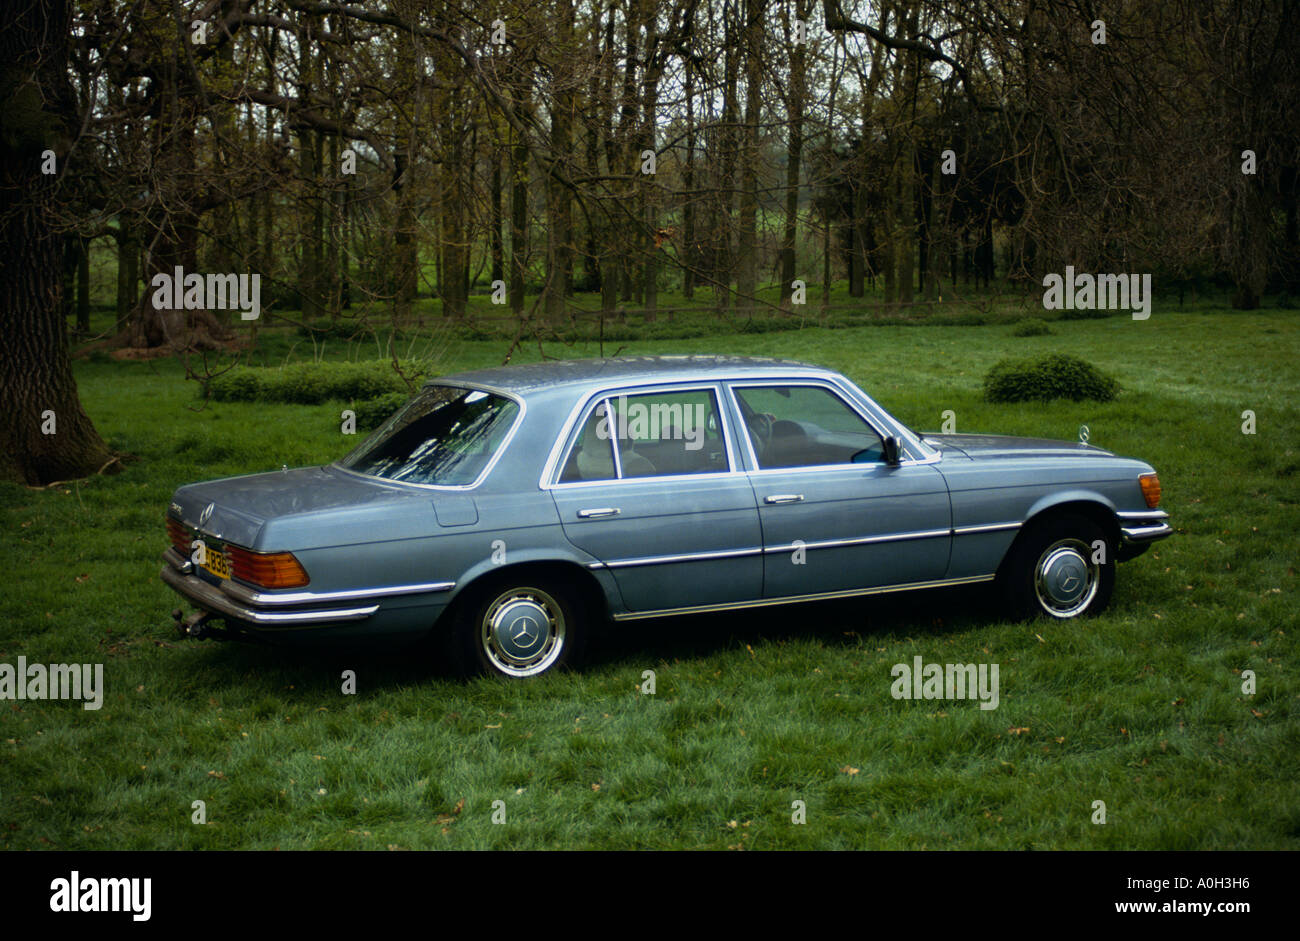 Mercedes Benz 280se S Class 1972 To 1980 W116 Stock